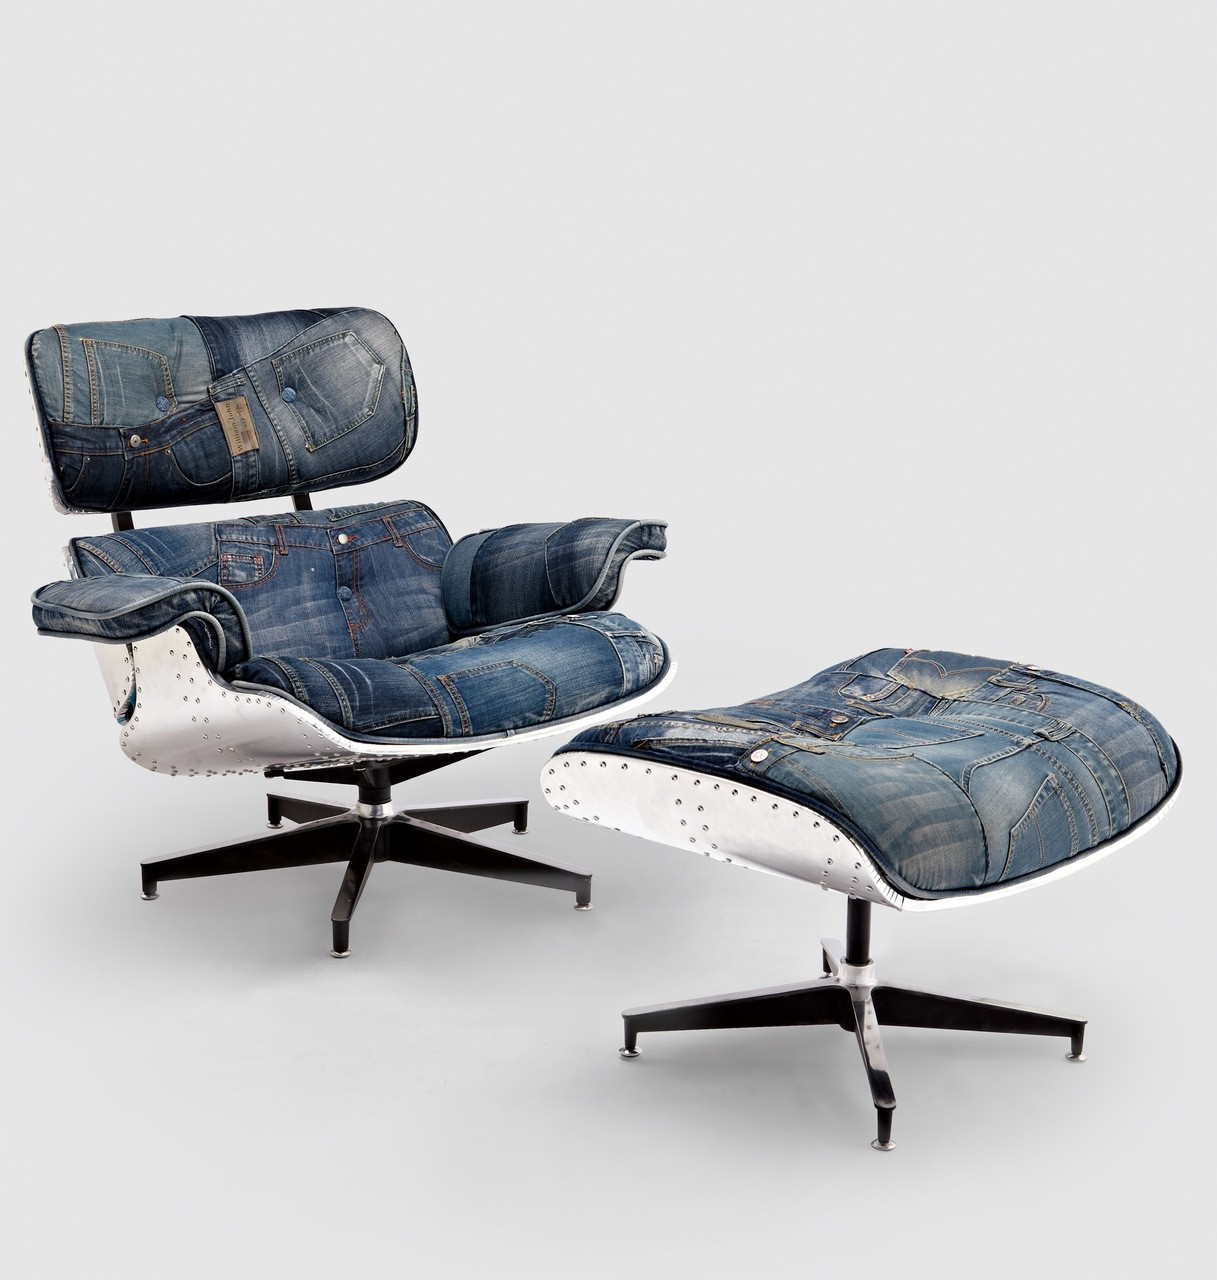 Brilliant Replica Eames Lounge Chair Ottoman Special Limited Edition Blue Denim Patchwork With Aluminium Back Caraccident5 Cool Chair Designs And Ideas Caraccident5Info